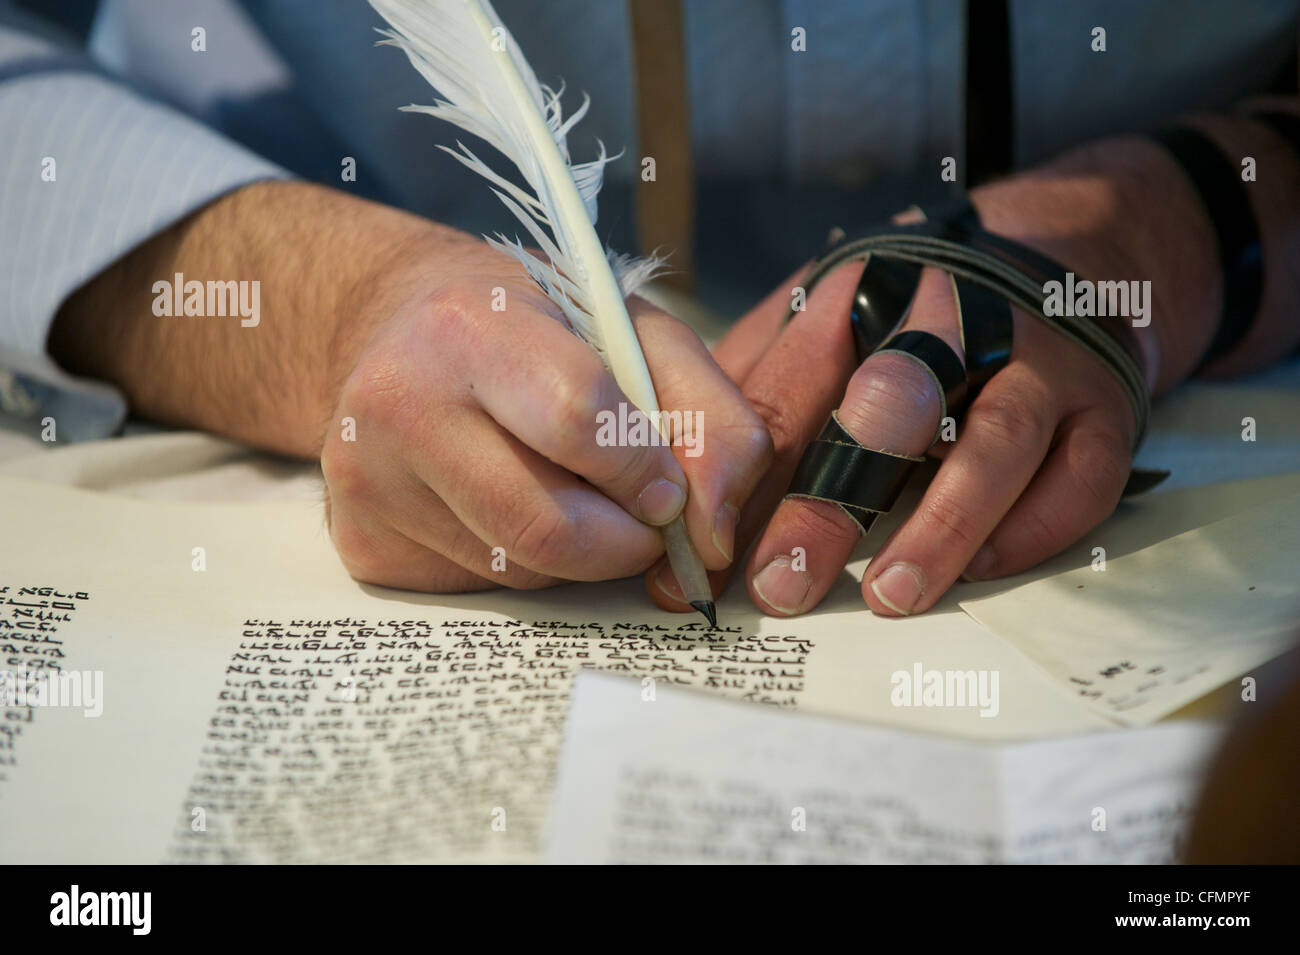 A Jewish scribe known as a Sopher writing Hebrew letters onto parchment forming a new Sefer Torah scroll.  Wearing - Stock Image